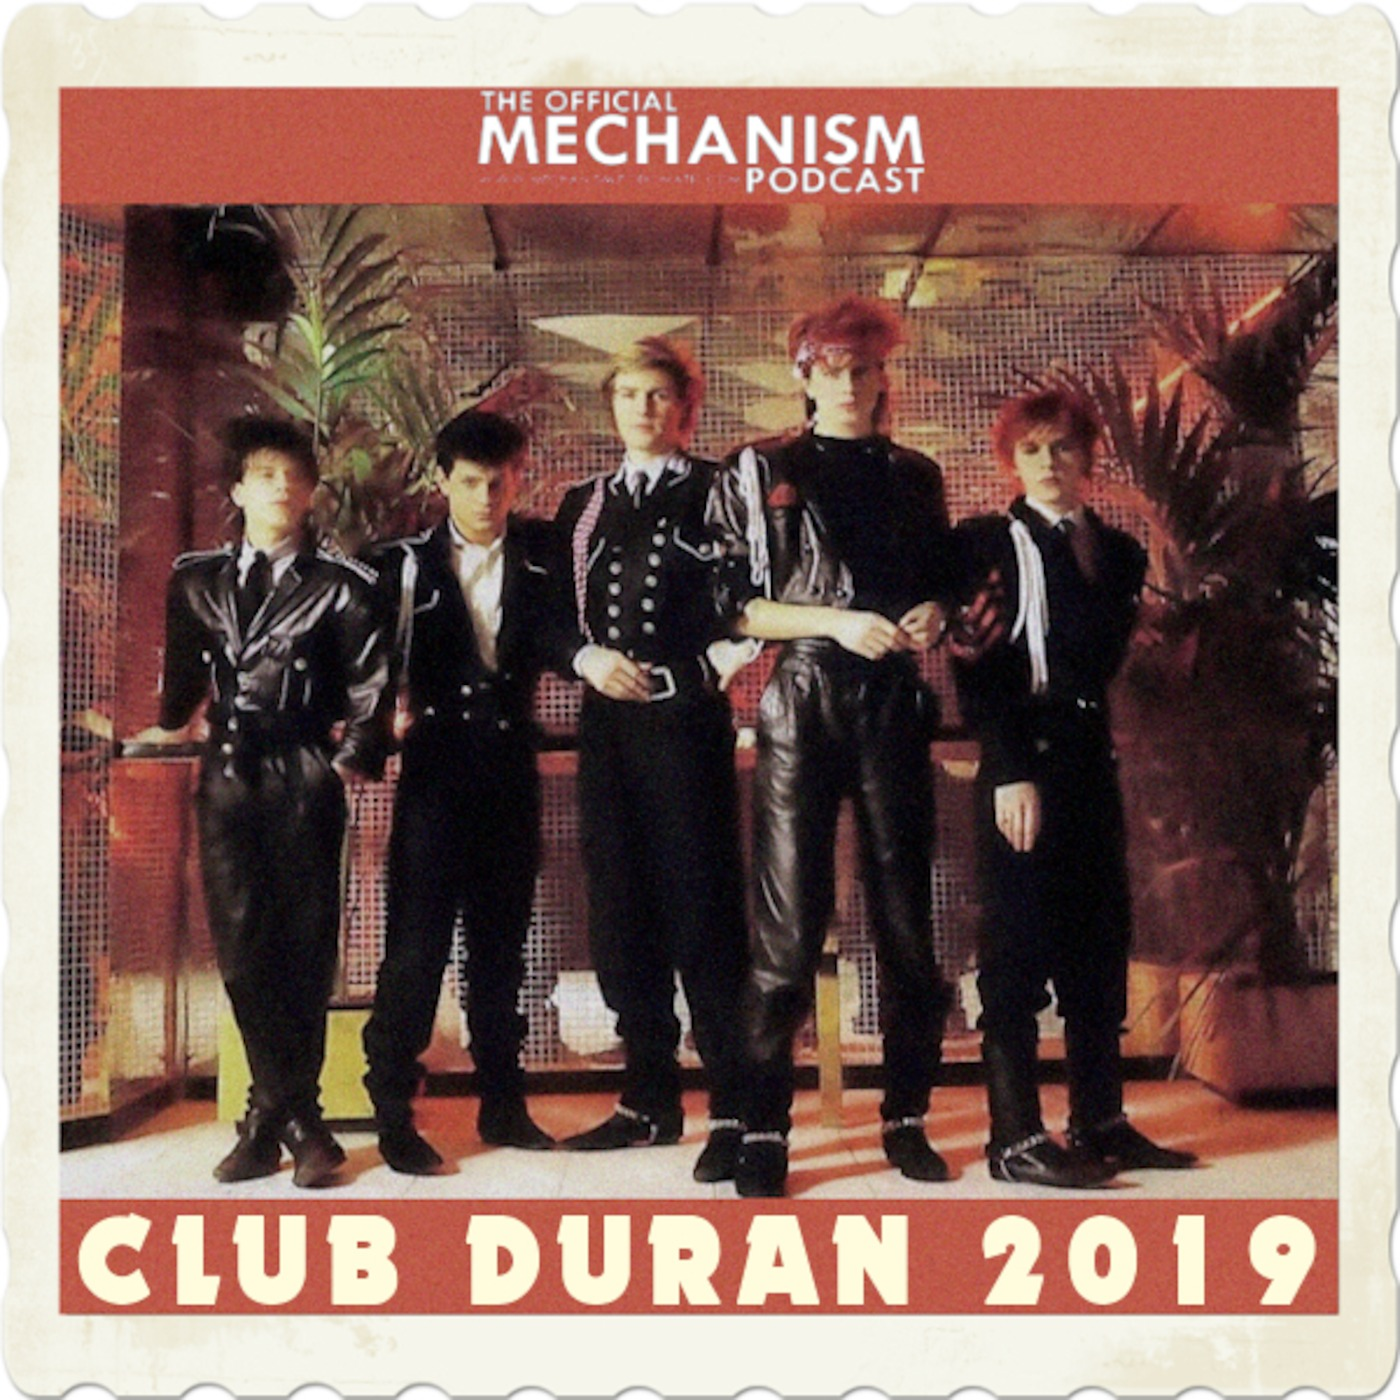 859 - CLUB DURAN 2019 THE OFFICIAL MECHANISM podcast